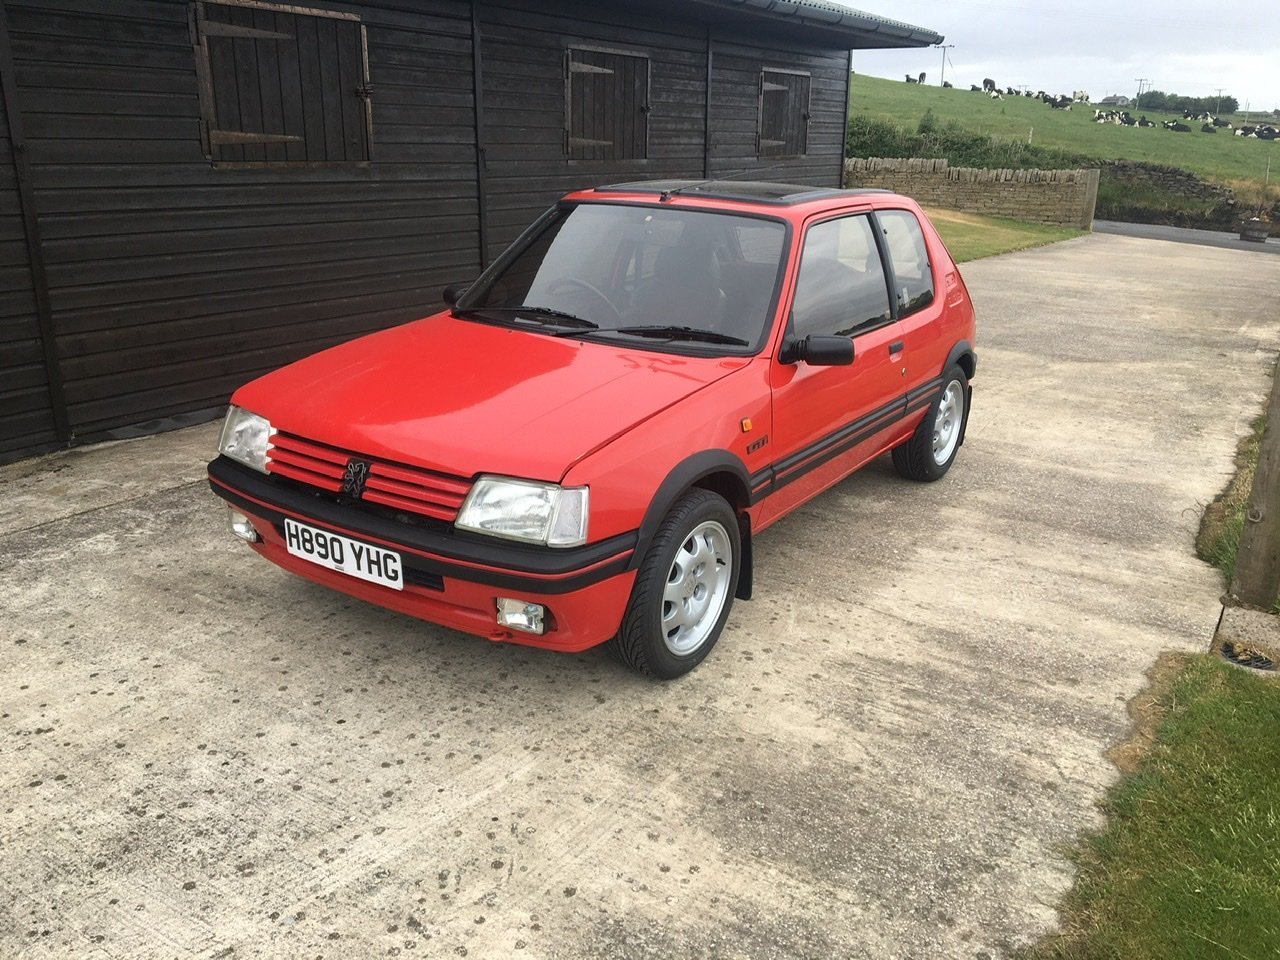 1991 Peugeot 205gti 1.9 SOLD (picture 1 of 6)